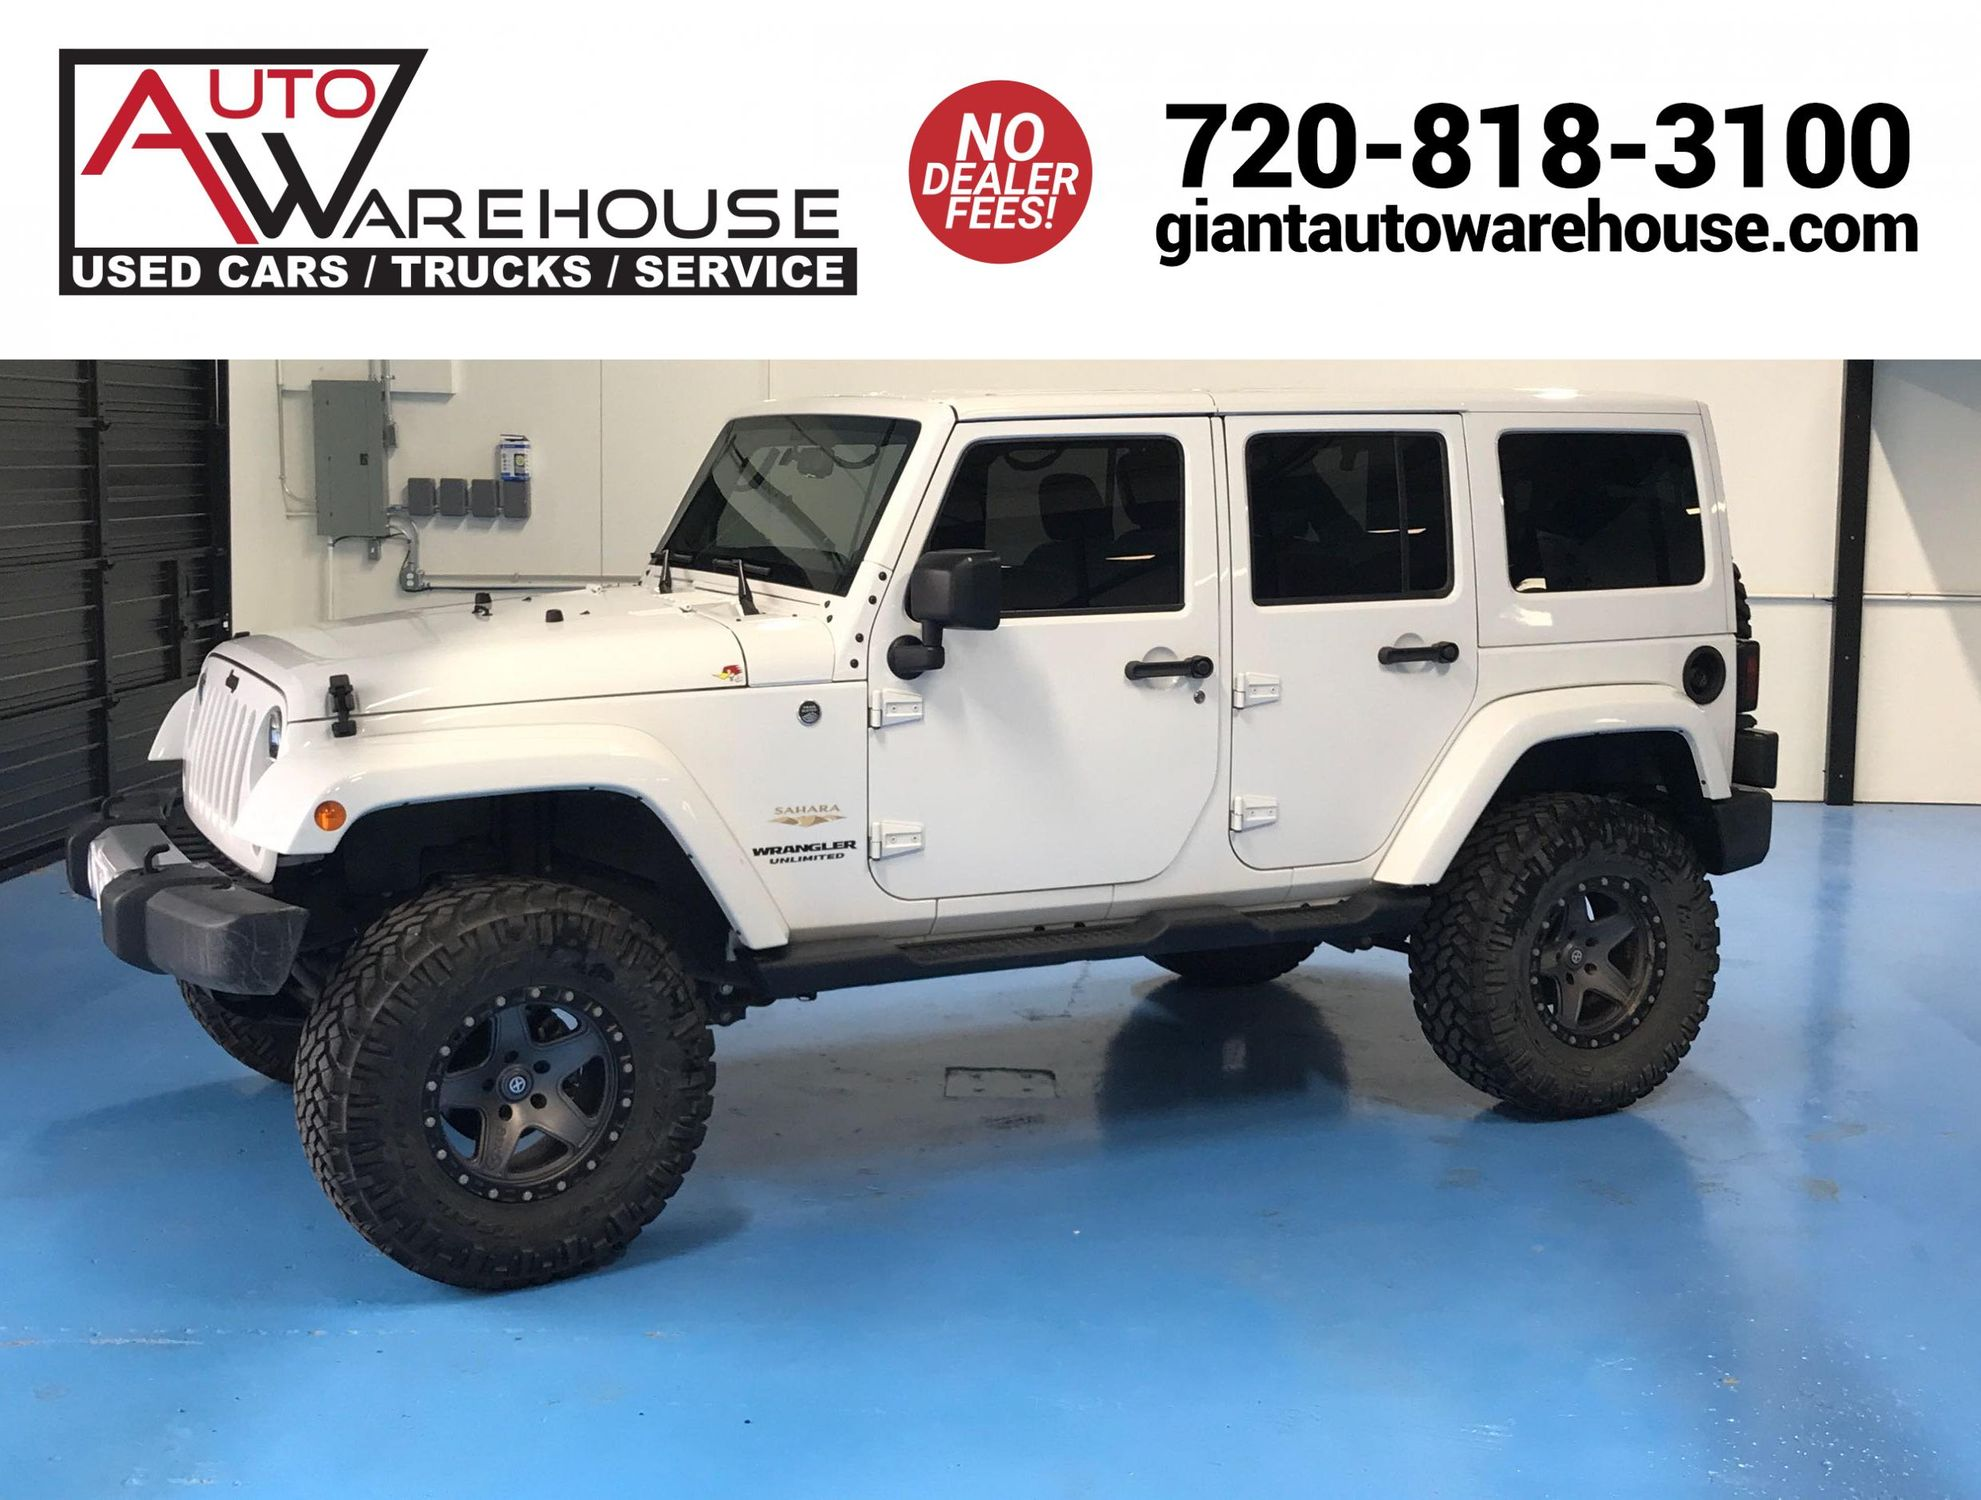 2014 Jeep Wrangler Unlimited Sahara Auto Warehouse White Lifted With Tire Carrier And Led Tail Lights Beauty